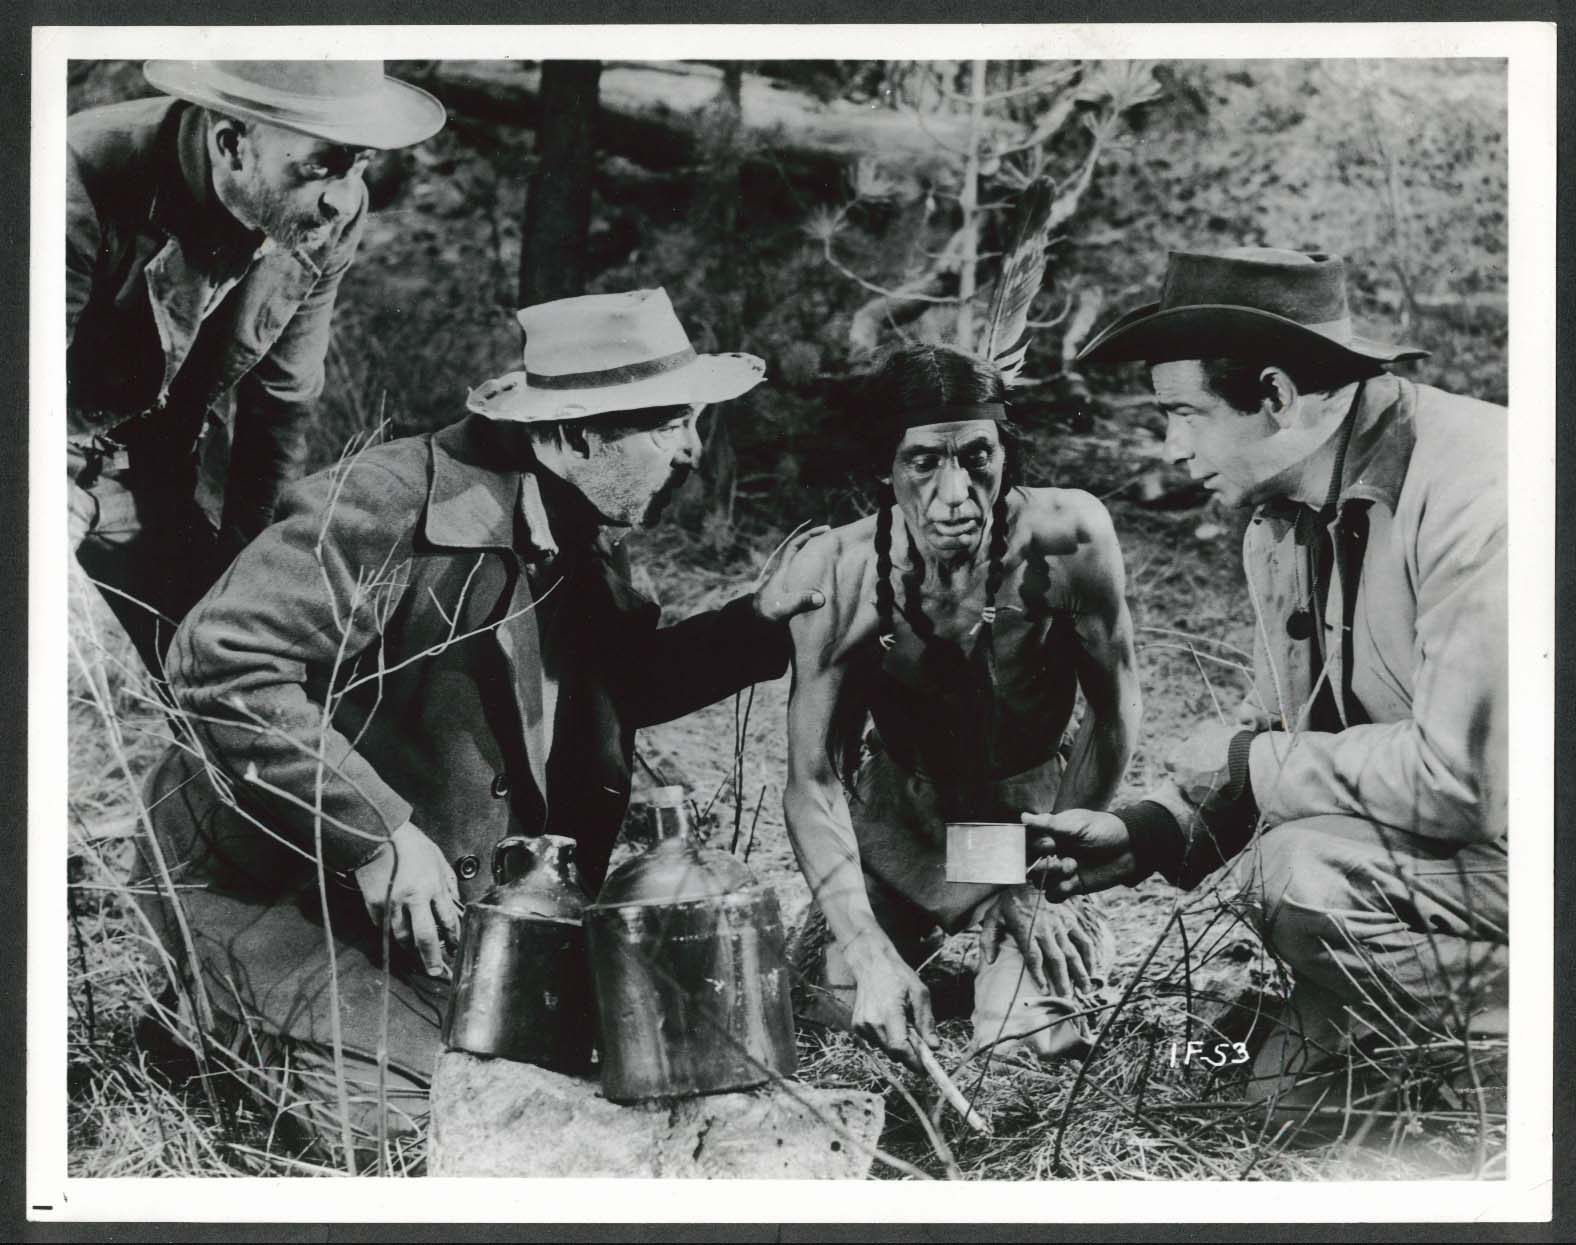 Image for Walter Matthau Ride a Crooked Trail 8x10 photograph 1958